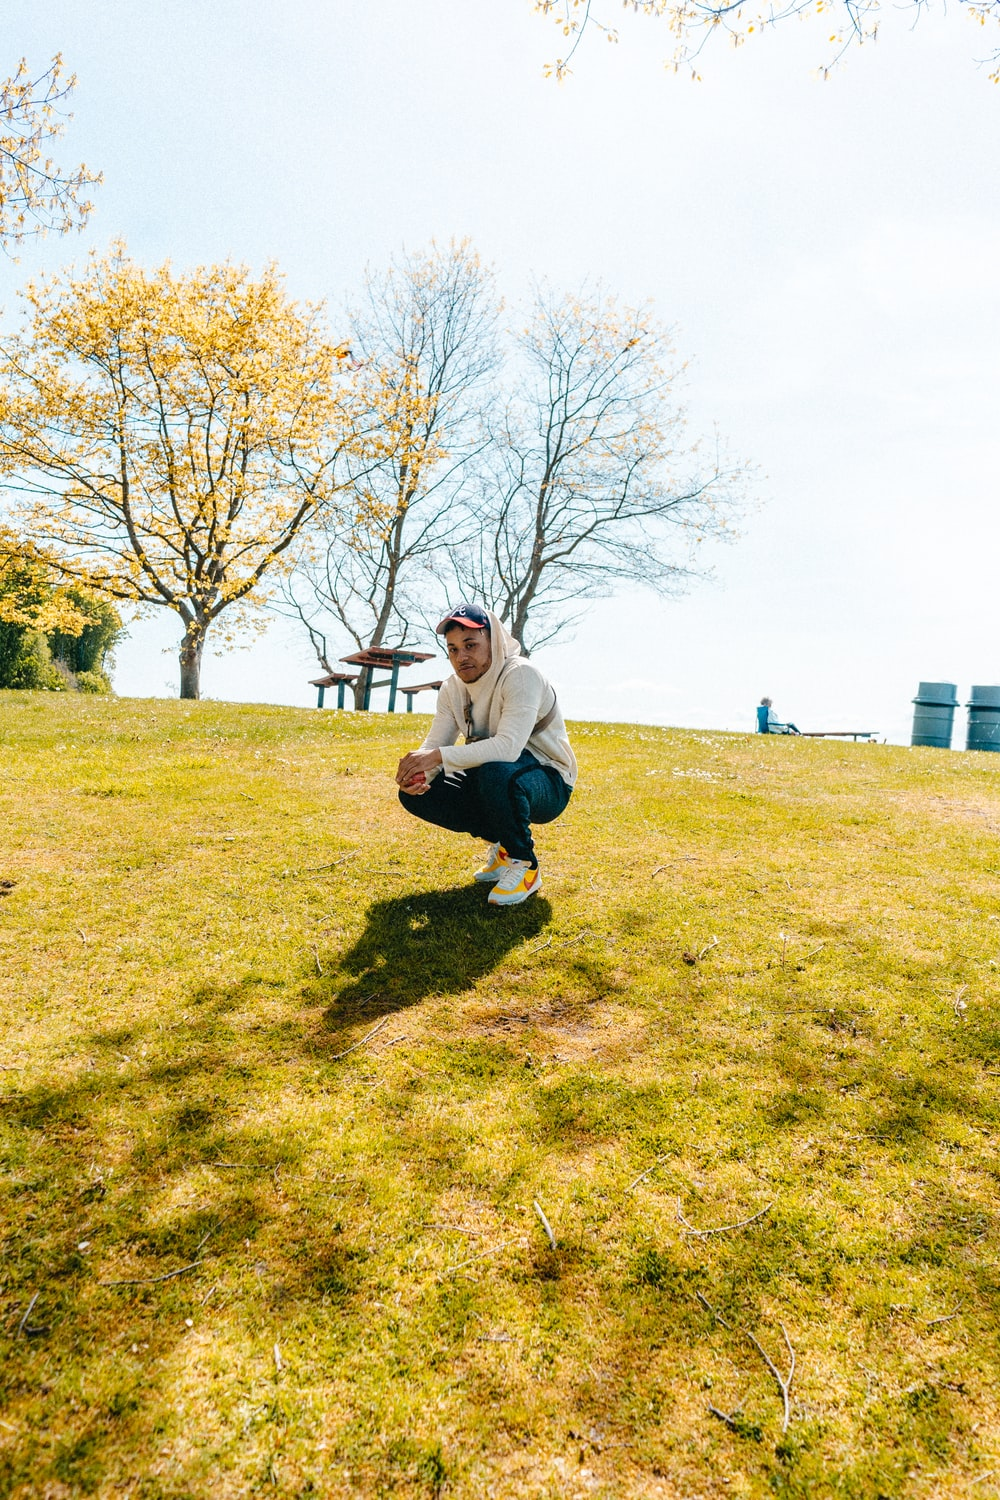 man in white jacket squatting on green grass lawn